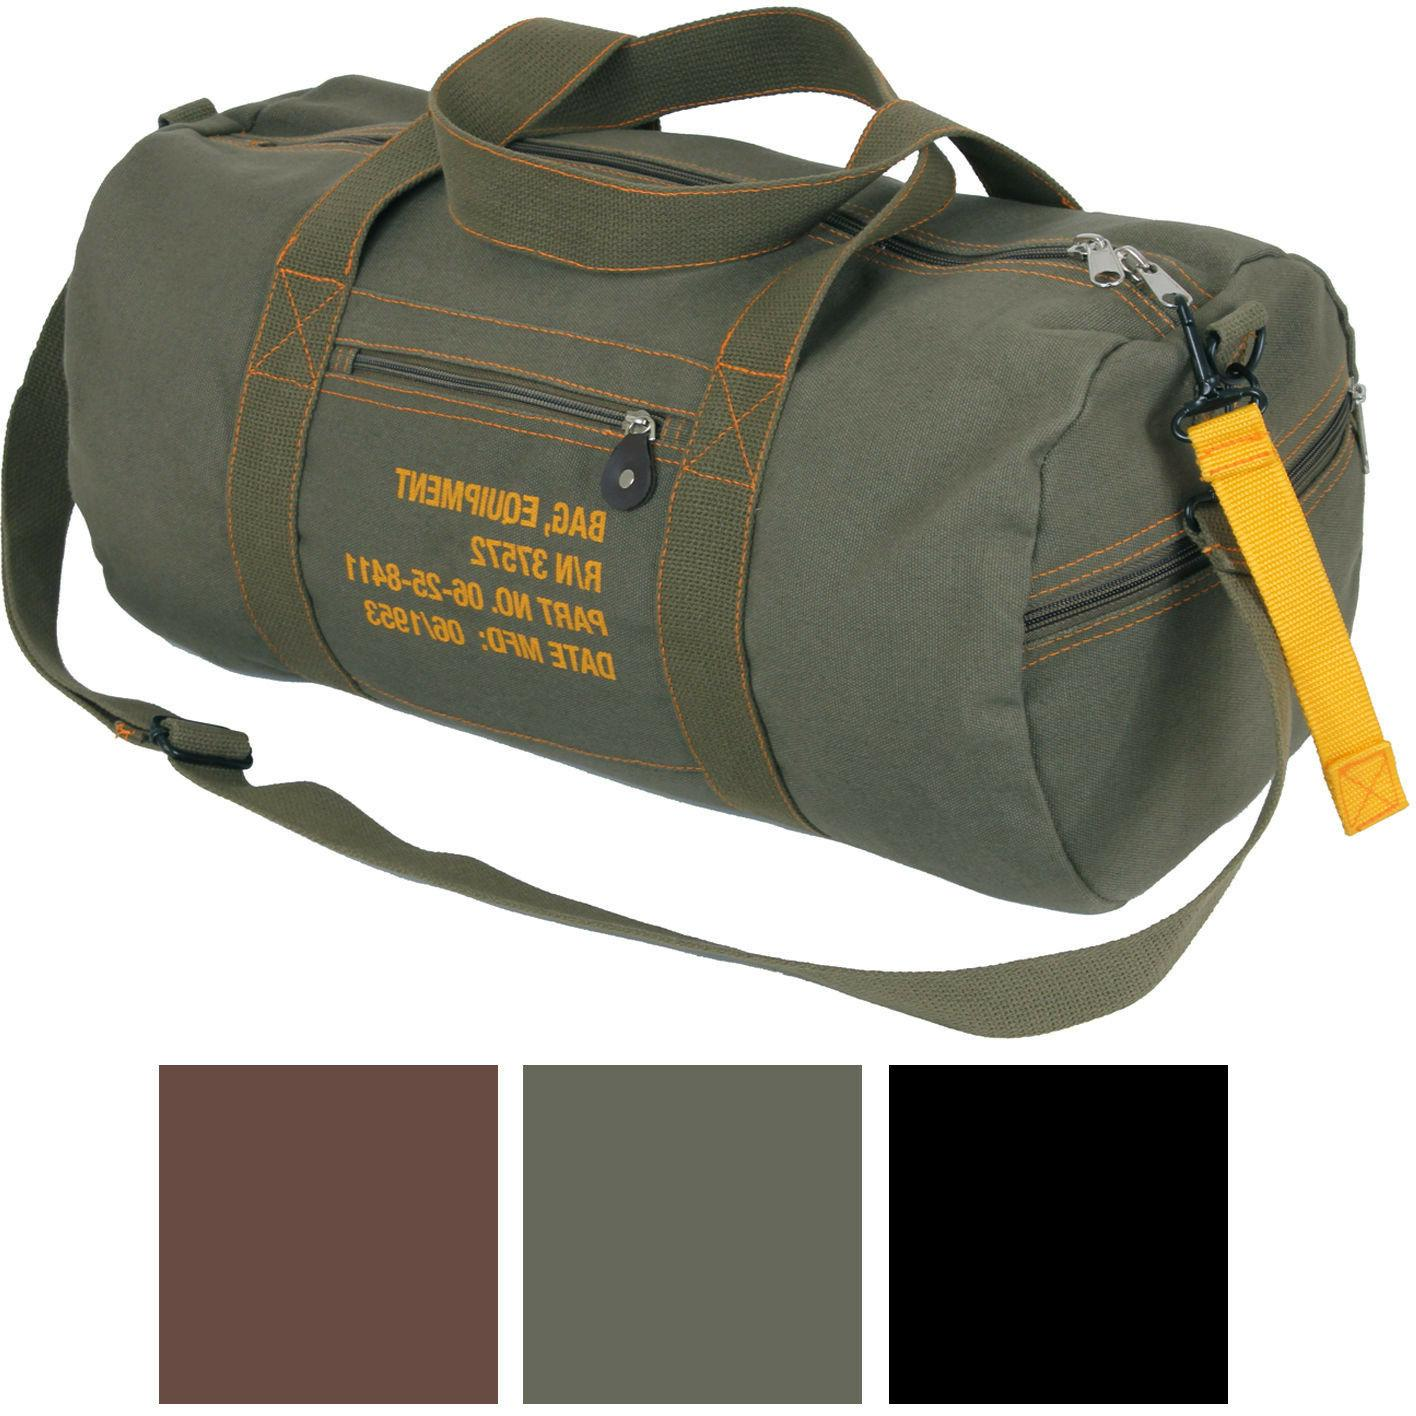 cotton canvas travel equipment flight carry duffle